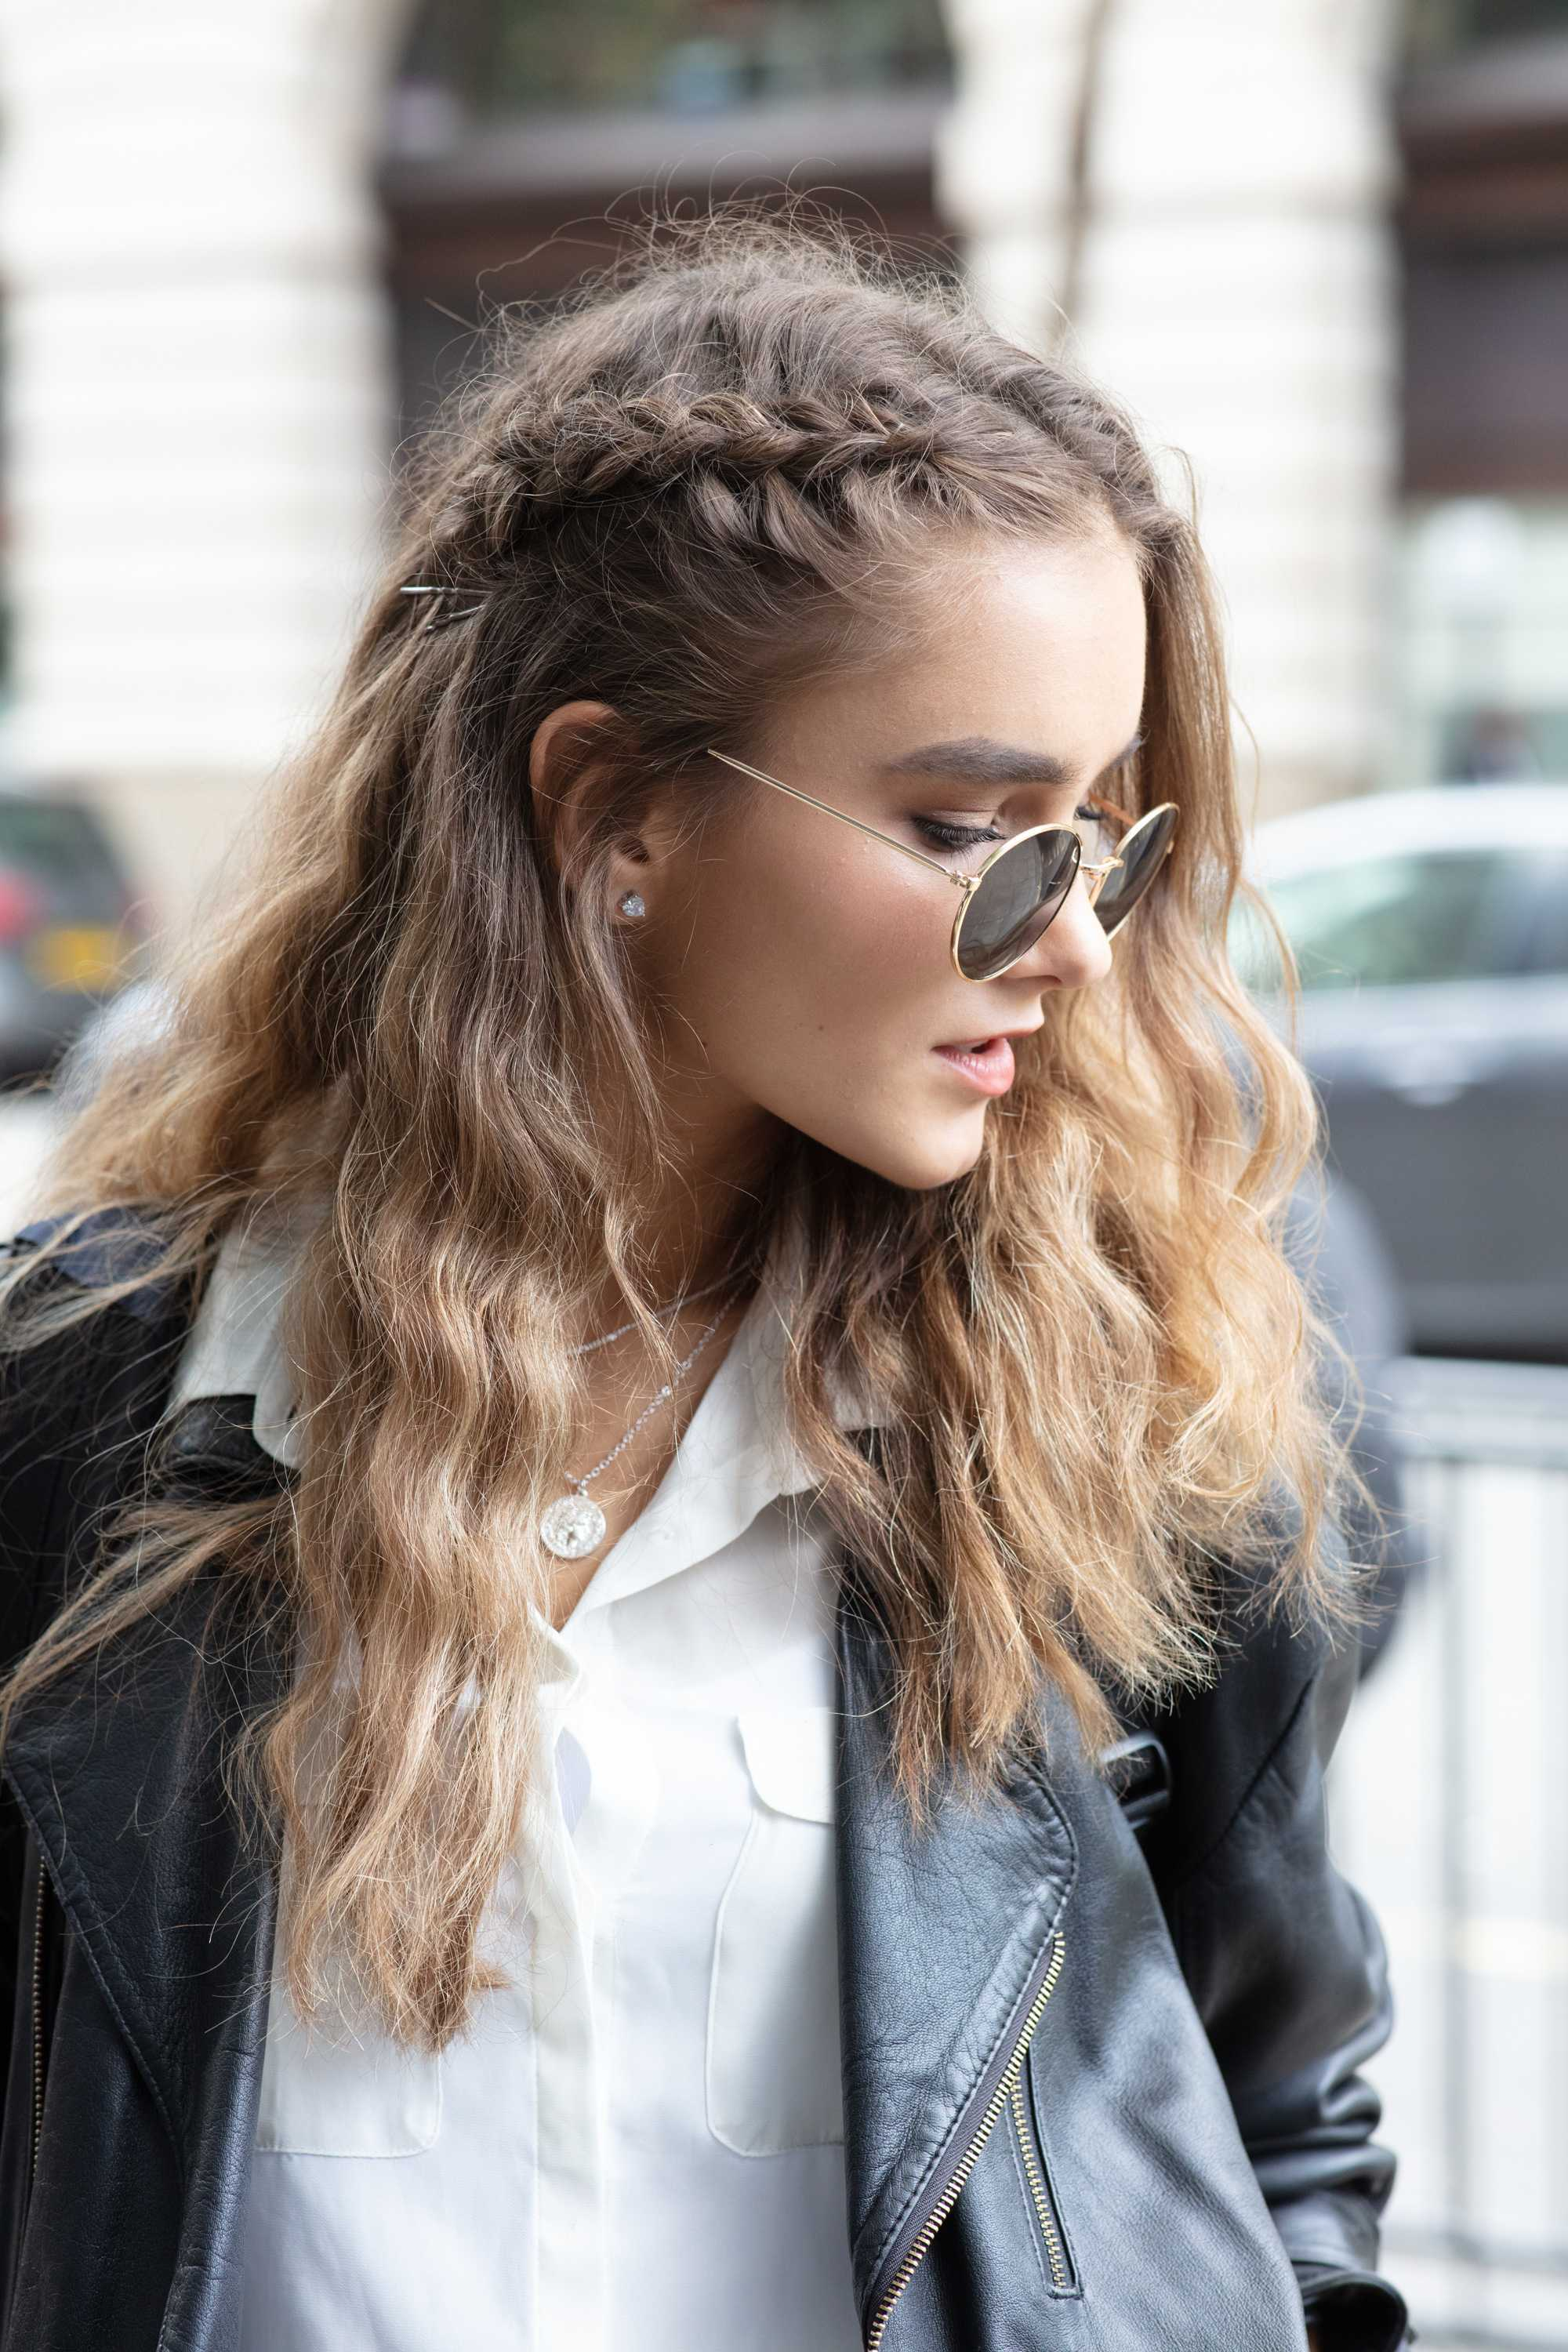 Long curly hair: Close up shot of a model with long light brown curly hair with an accent side braid, wearing sunglasses and black leather jacket on the street